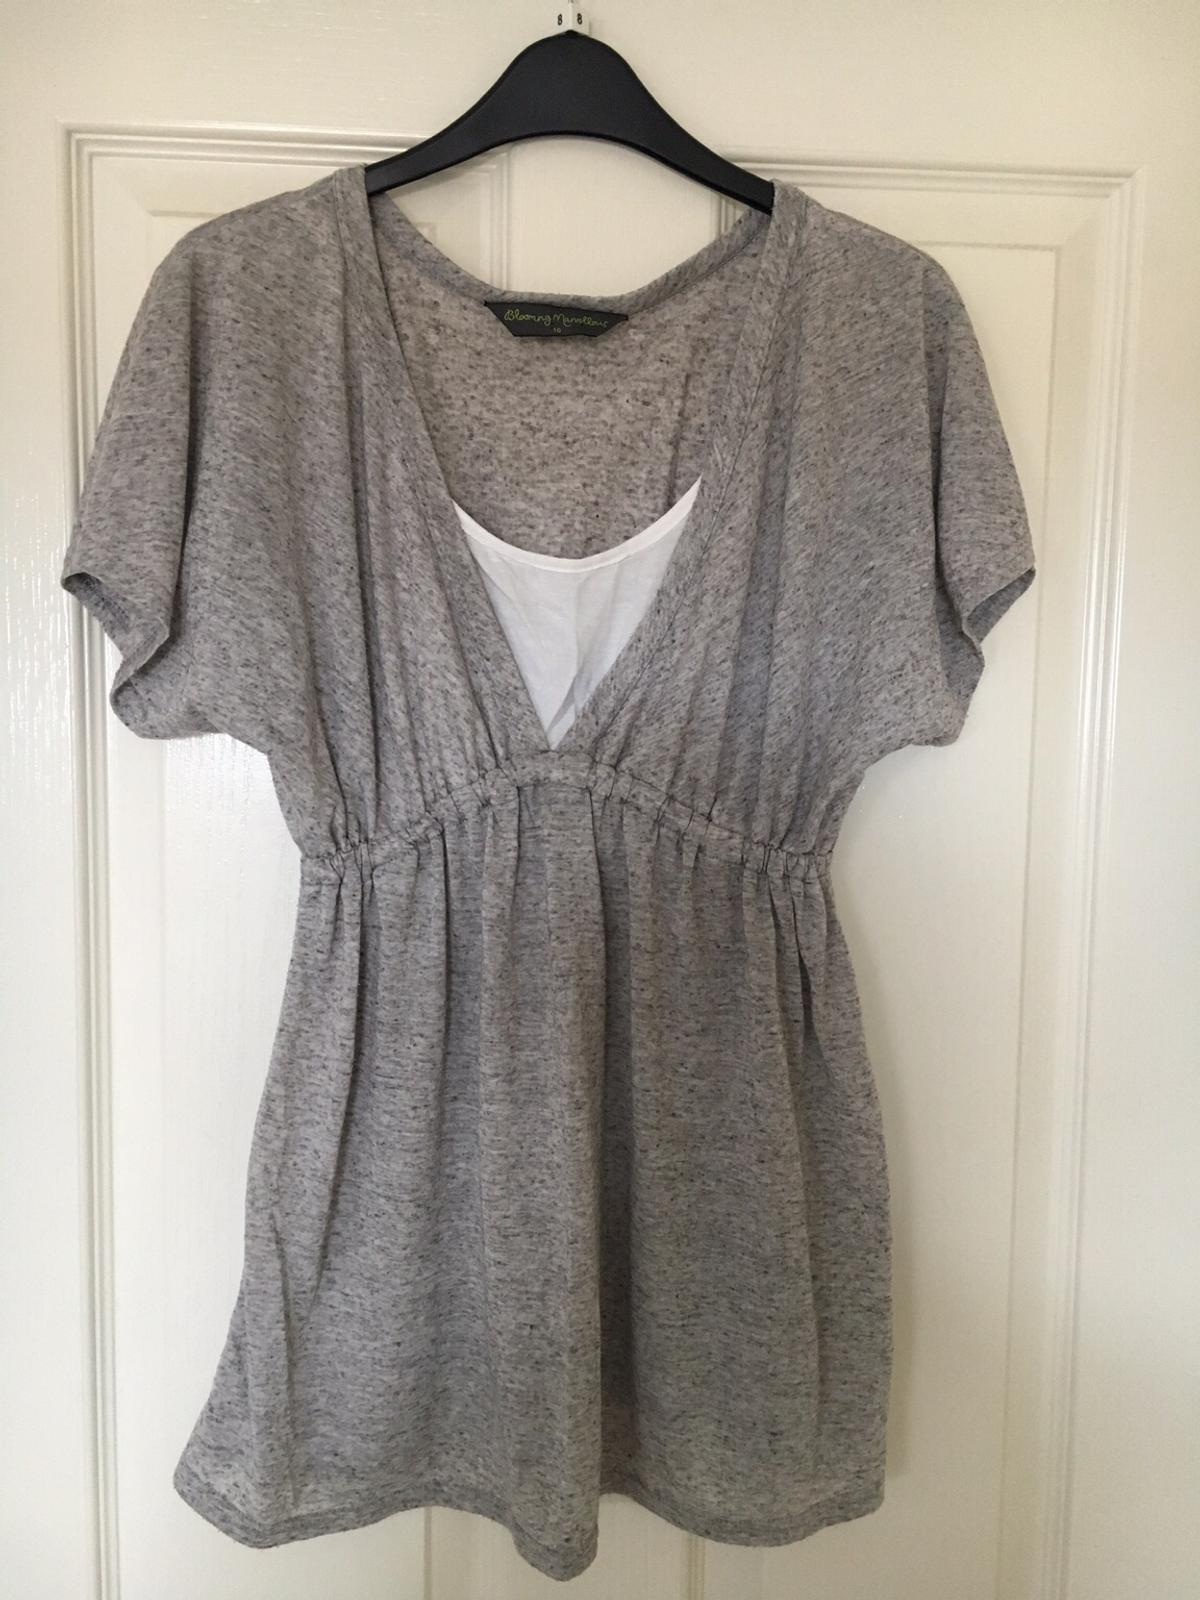 8c67bdbfd24c3 Breastfeeding Tops x2 in SG18 Langford for £5.00 for sale - Shpock